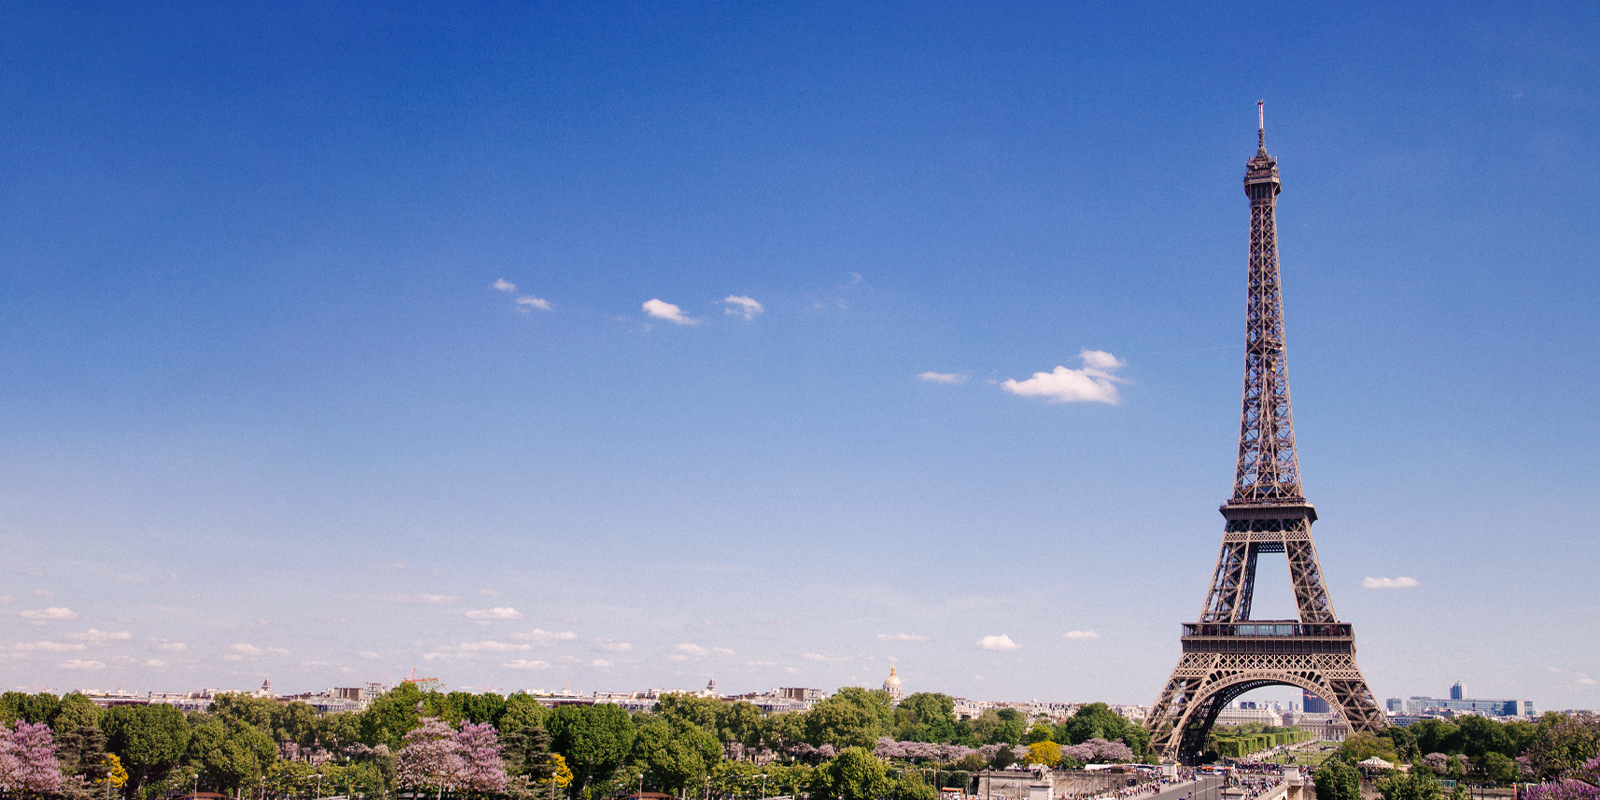 An image of blue skies with Eiffel tower